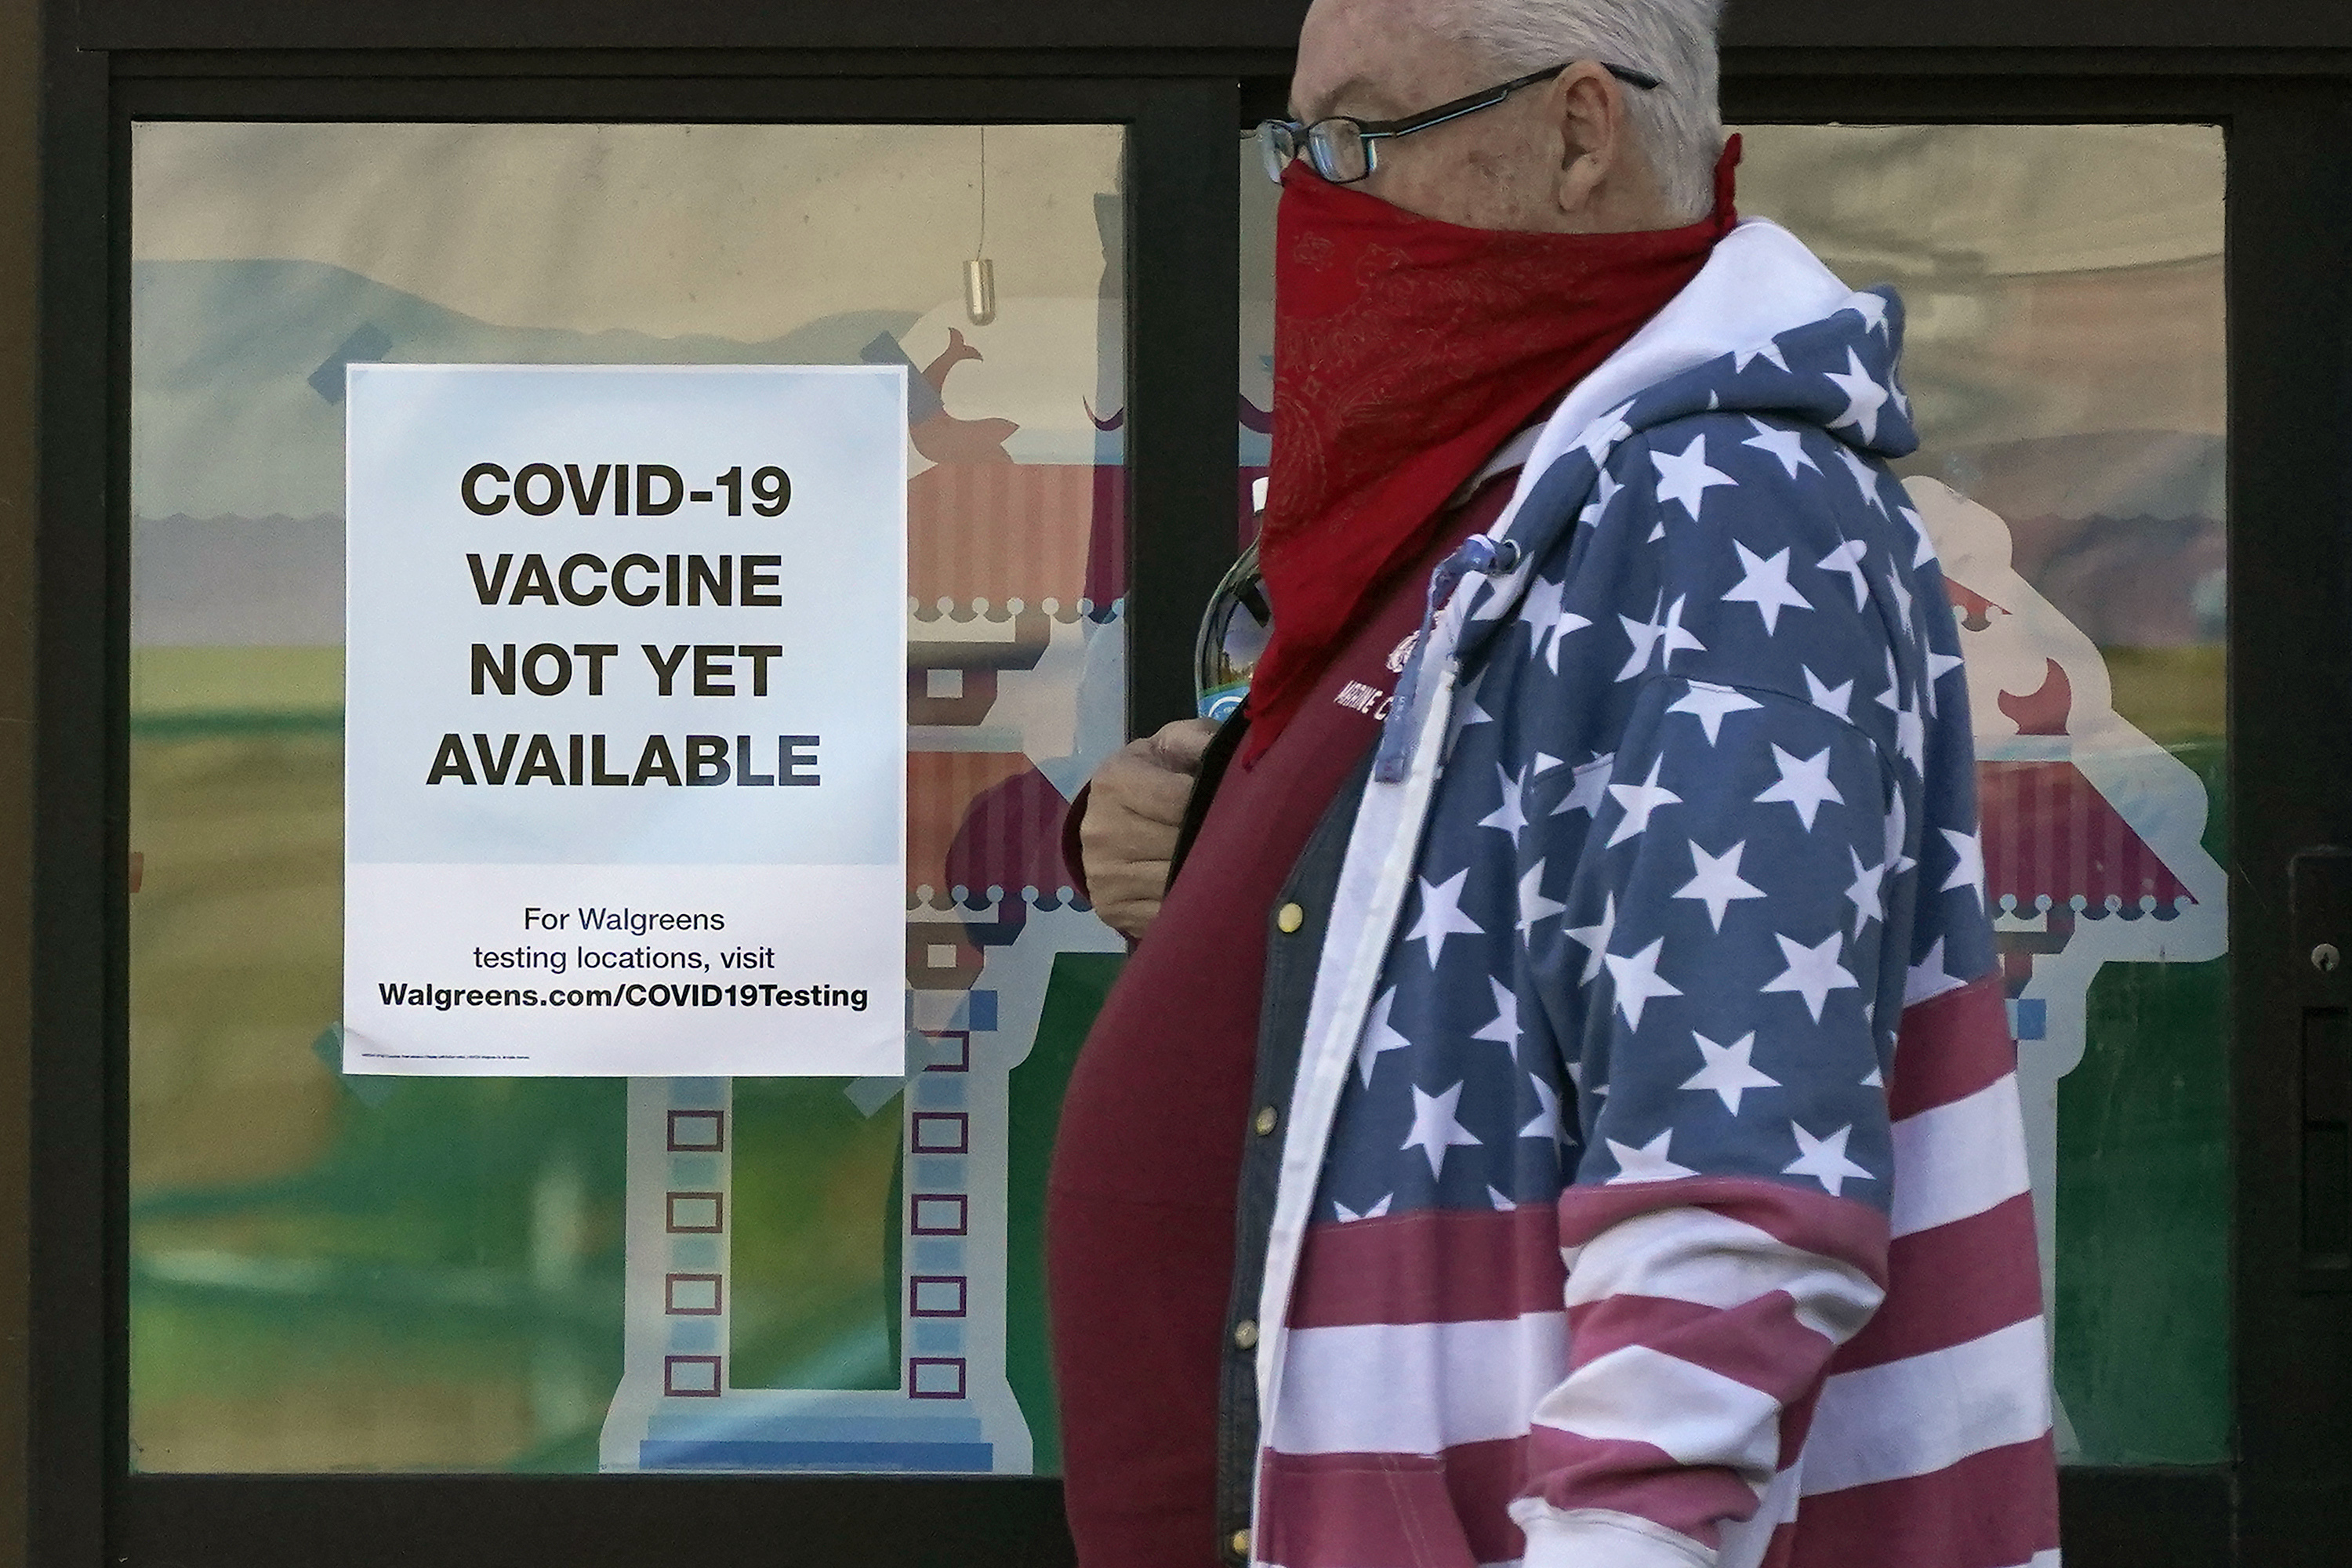 A pedestrian wearing a mask walks past a sign advising that COVID-19 vaccines are not available yet at a Walgreen's pharmacy store during the coronavirus outbreak in San Francisco, Wednesday, Dec. 2, 2020. (AP Photo/Jeff Chiu)